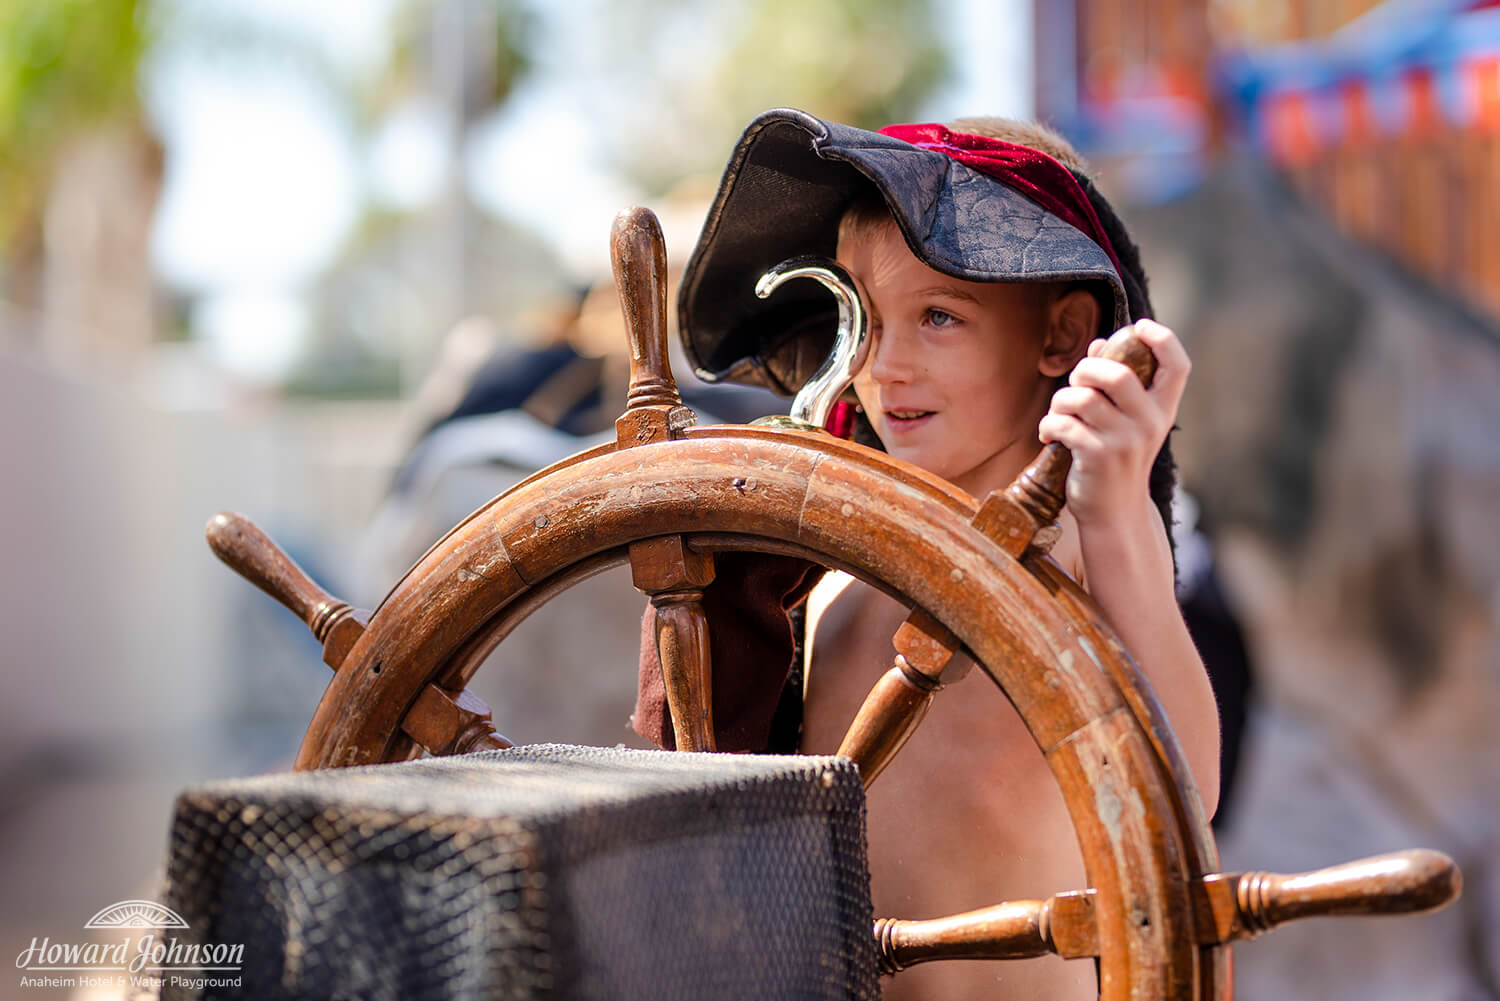 a little girl wearing a pirate hat with a gold hand hook mans the ship's wheel